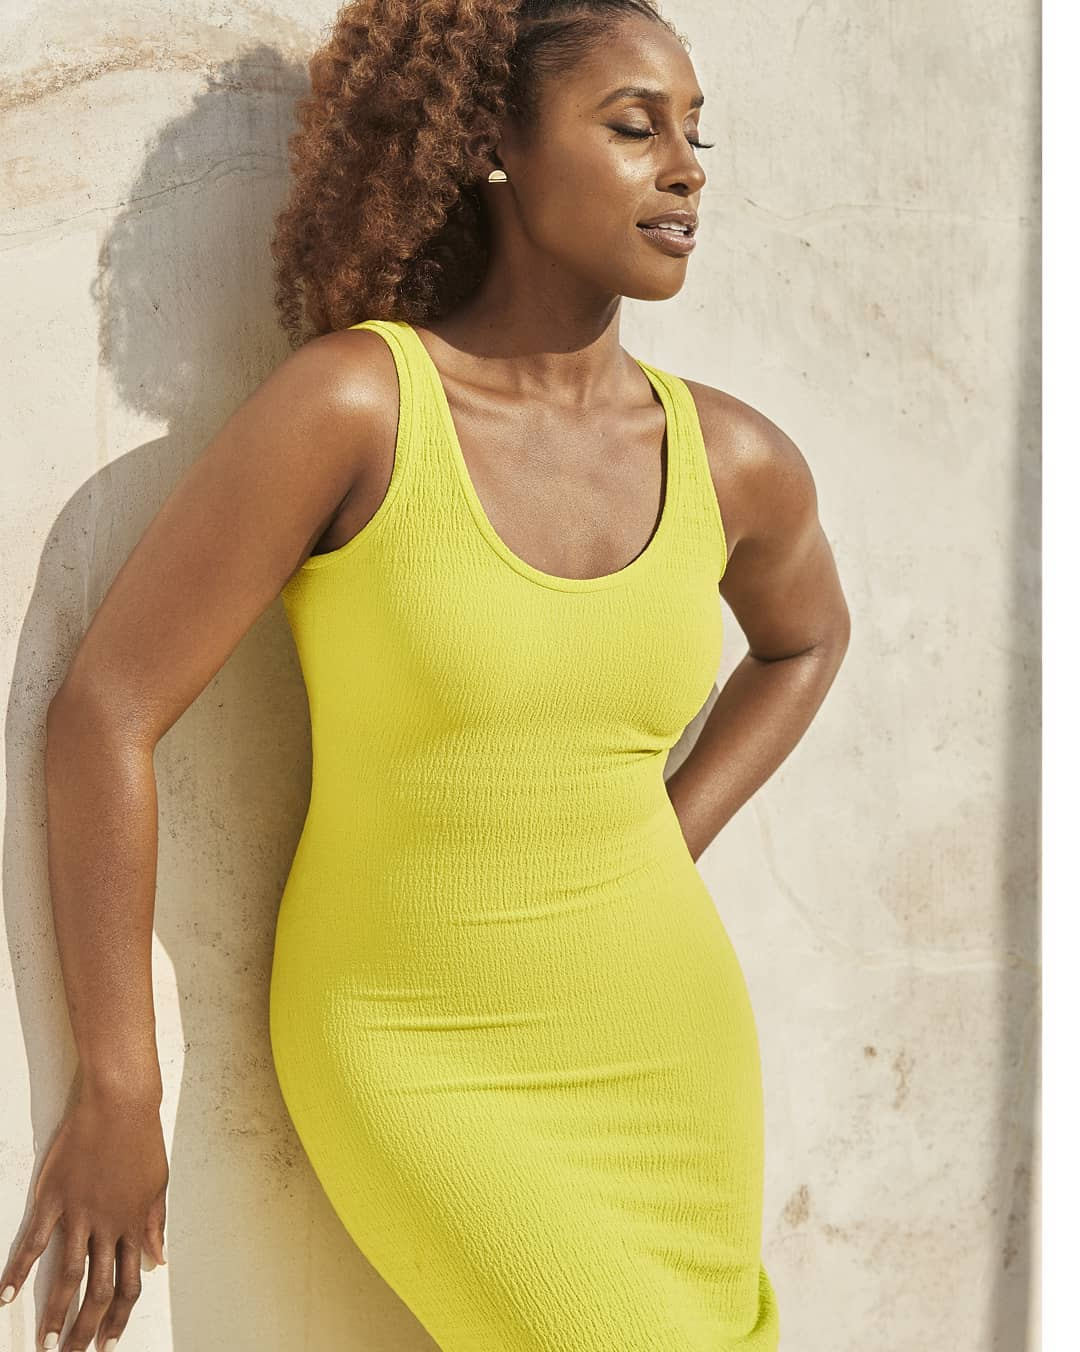 Issa Rae Is #BodyGoals As She CoversWomen's Health Magazine's New Issue!